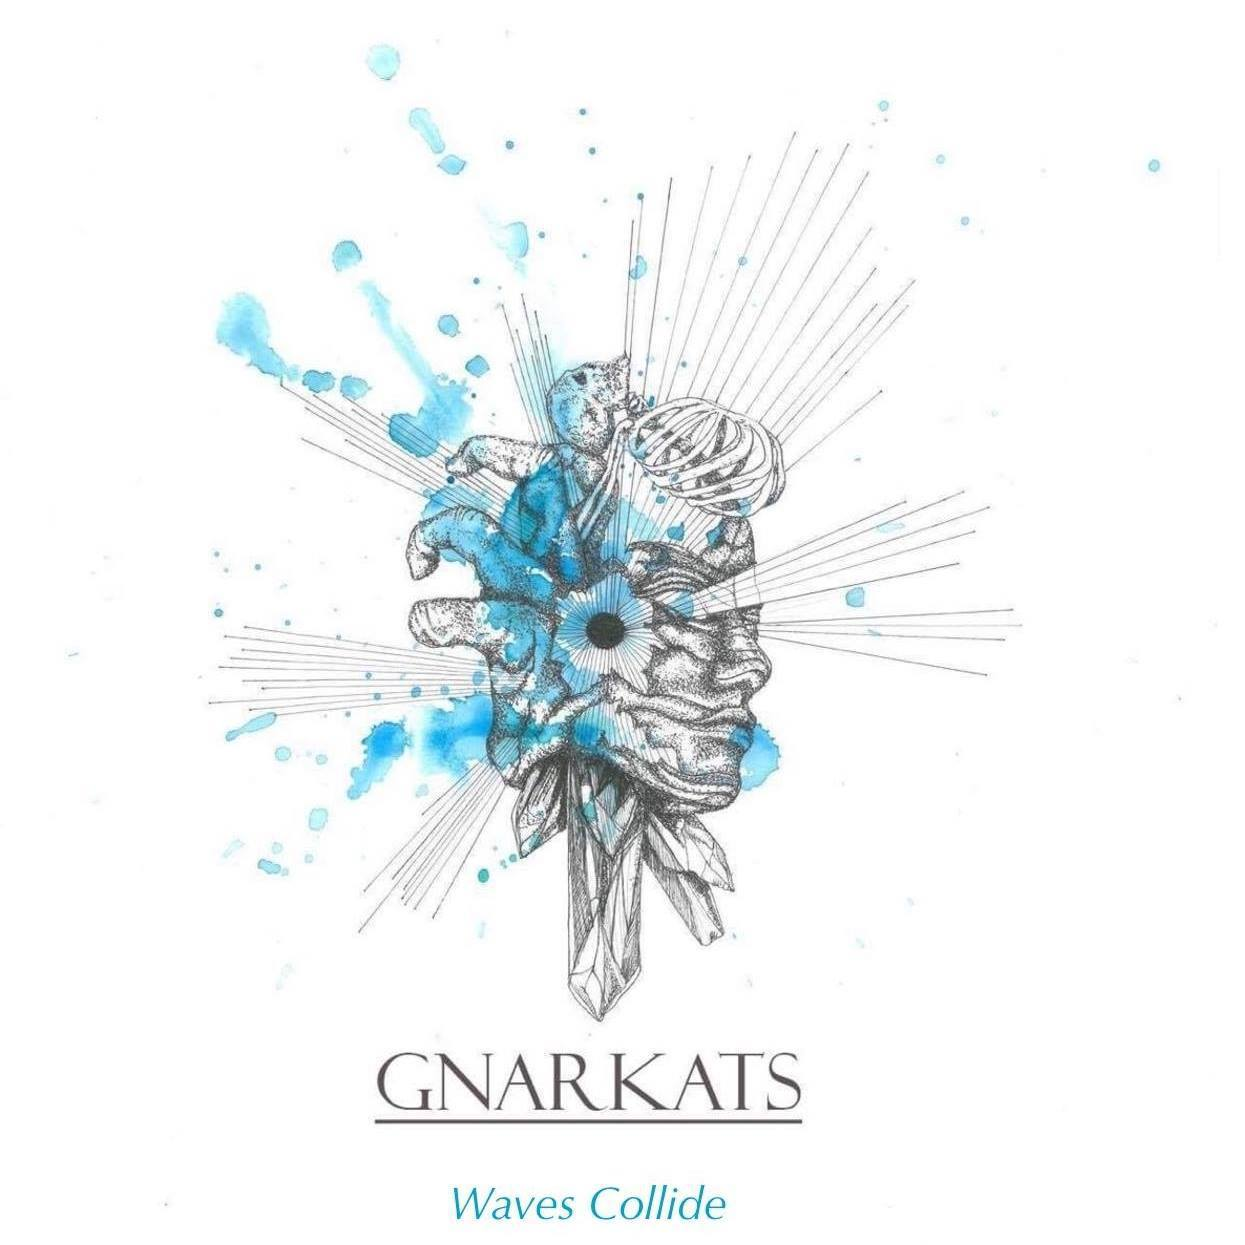 Listen | Check out the heavy fuzz of 'Running From You' by Gnarkats